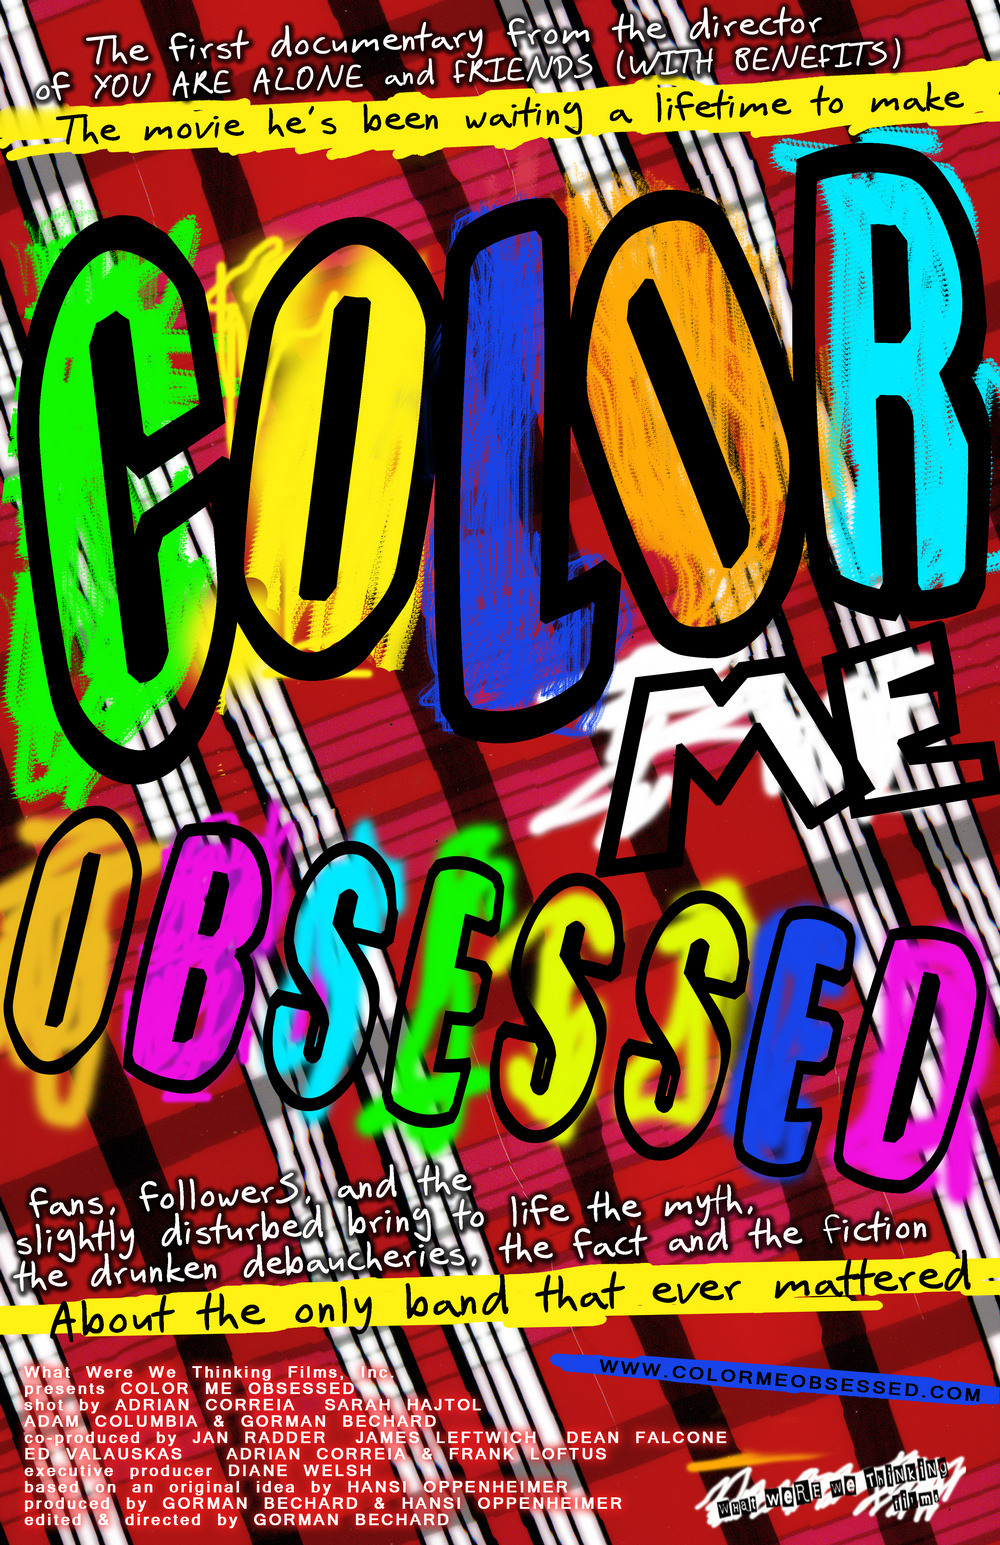 'Color Me Obsessed,' documentary about The Replacements, premiering at Florida film fest